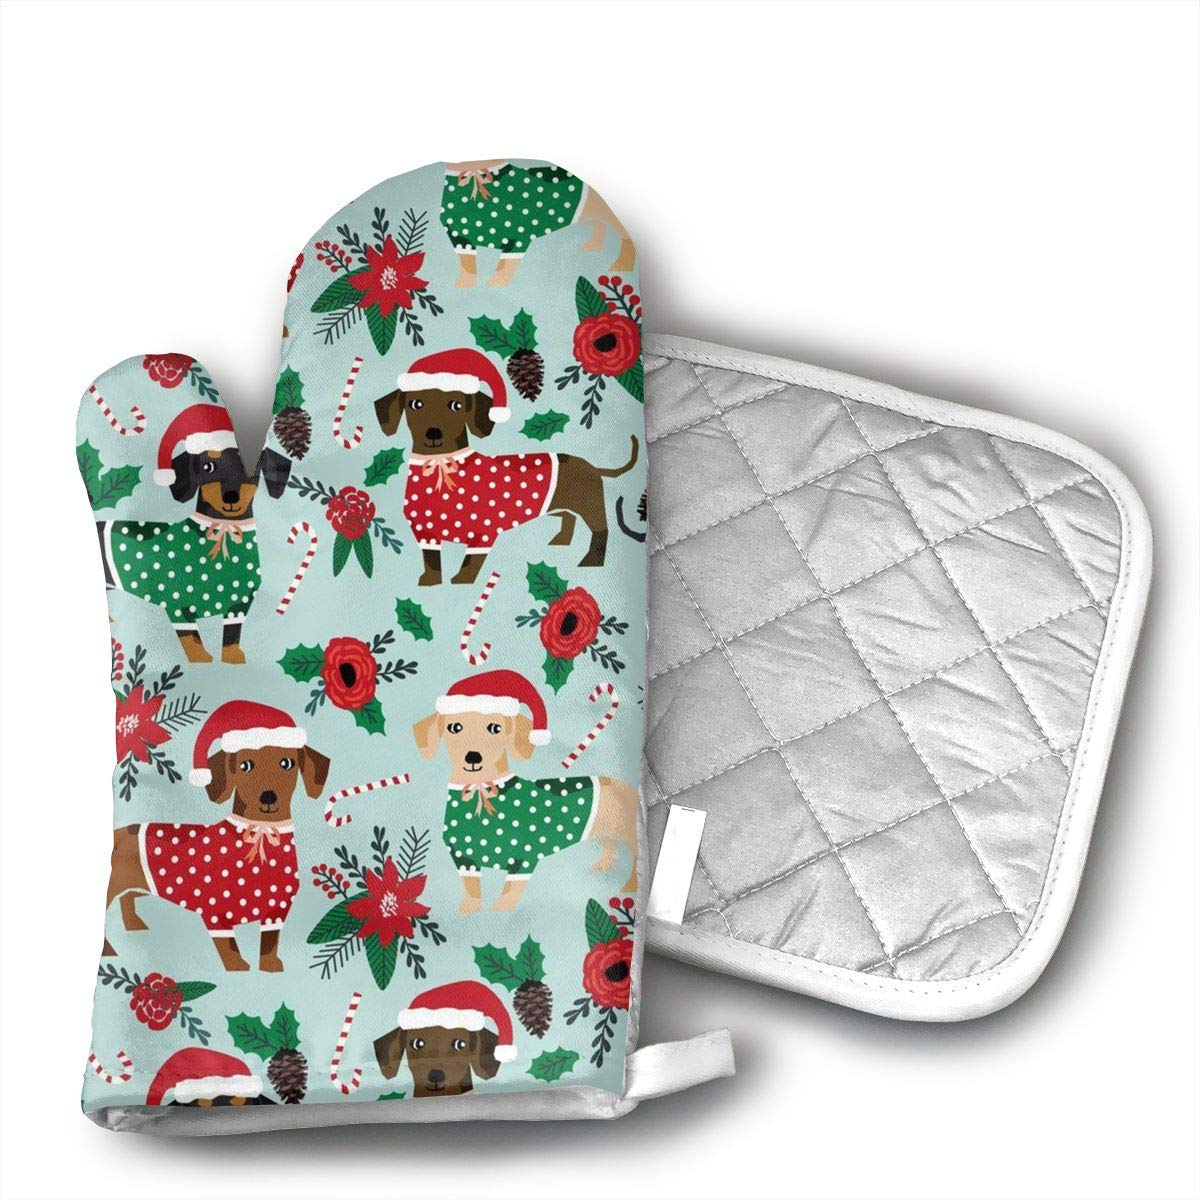 FGXQB Christmas Sweaters Cute Dachshunds Oven Mitts, with The Heat Resistance of Silicone and Flexibility of Cotton, Recycled Cotton Infill, Terrycloth Lining,